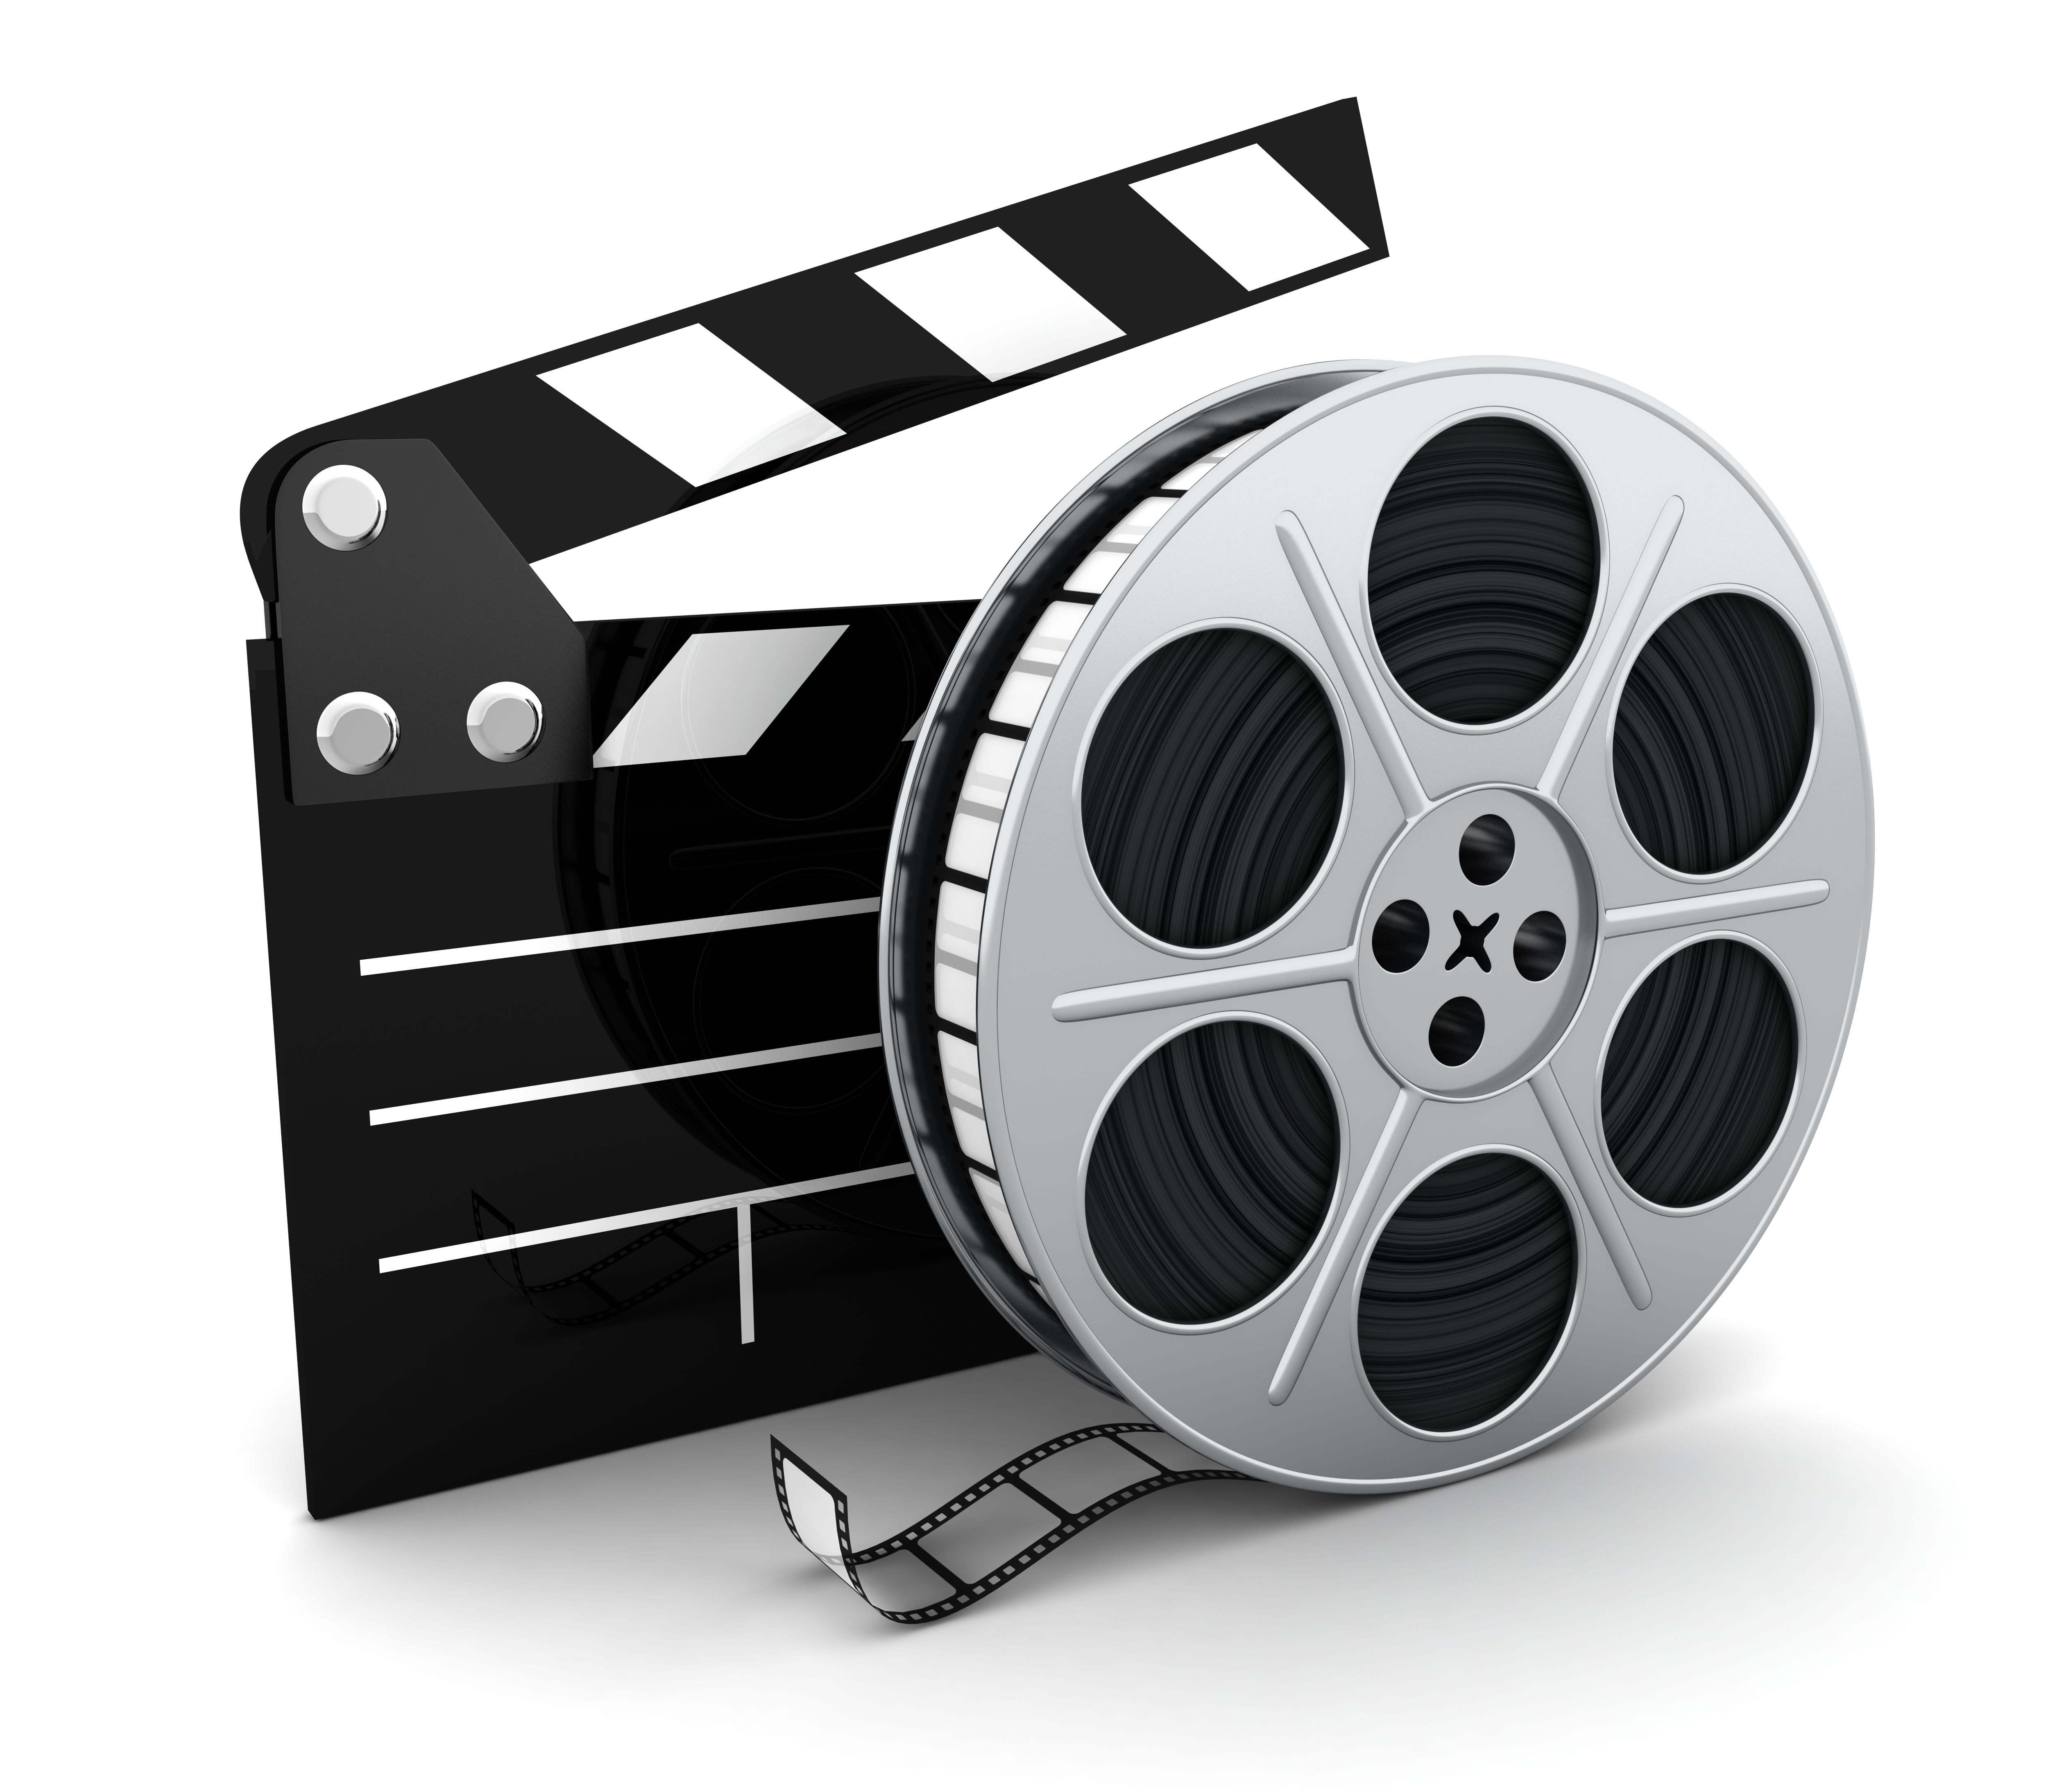 Movie roll clipart picture transparent library Kaya Fm – Movie Film Roll Clip Art 10 clipart free image picture transparent library